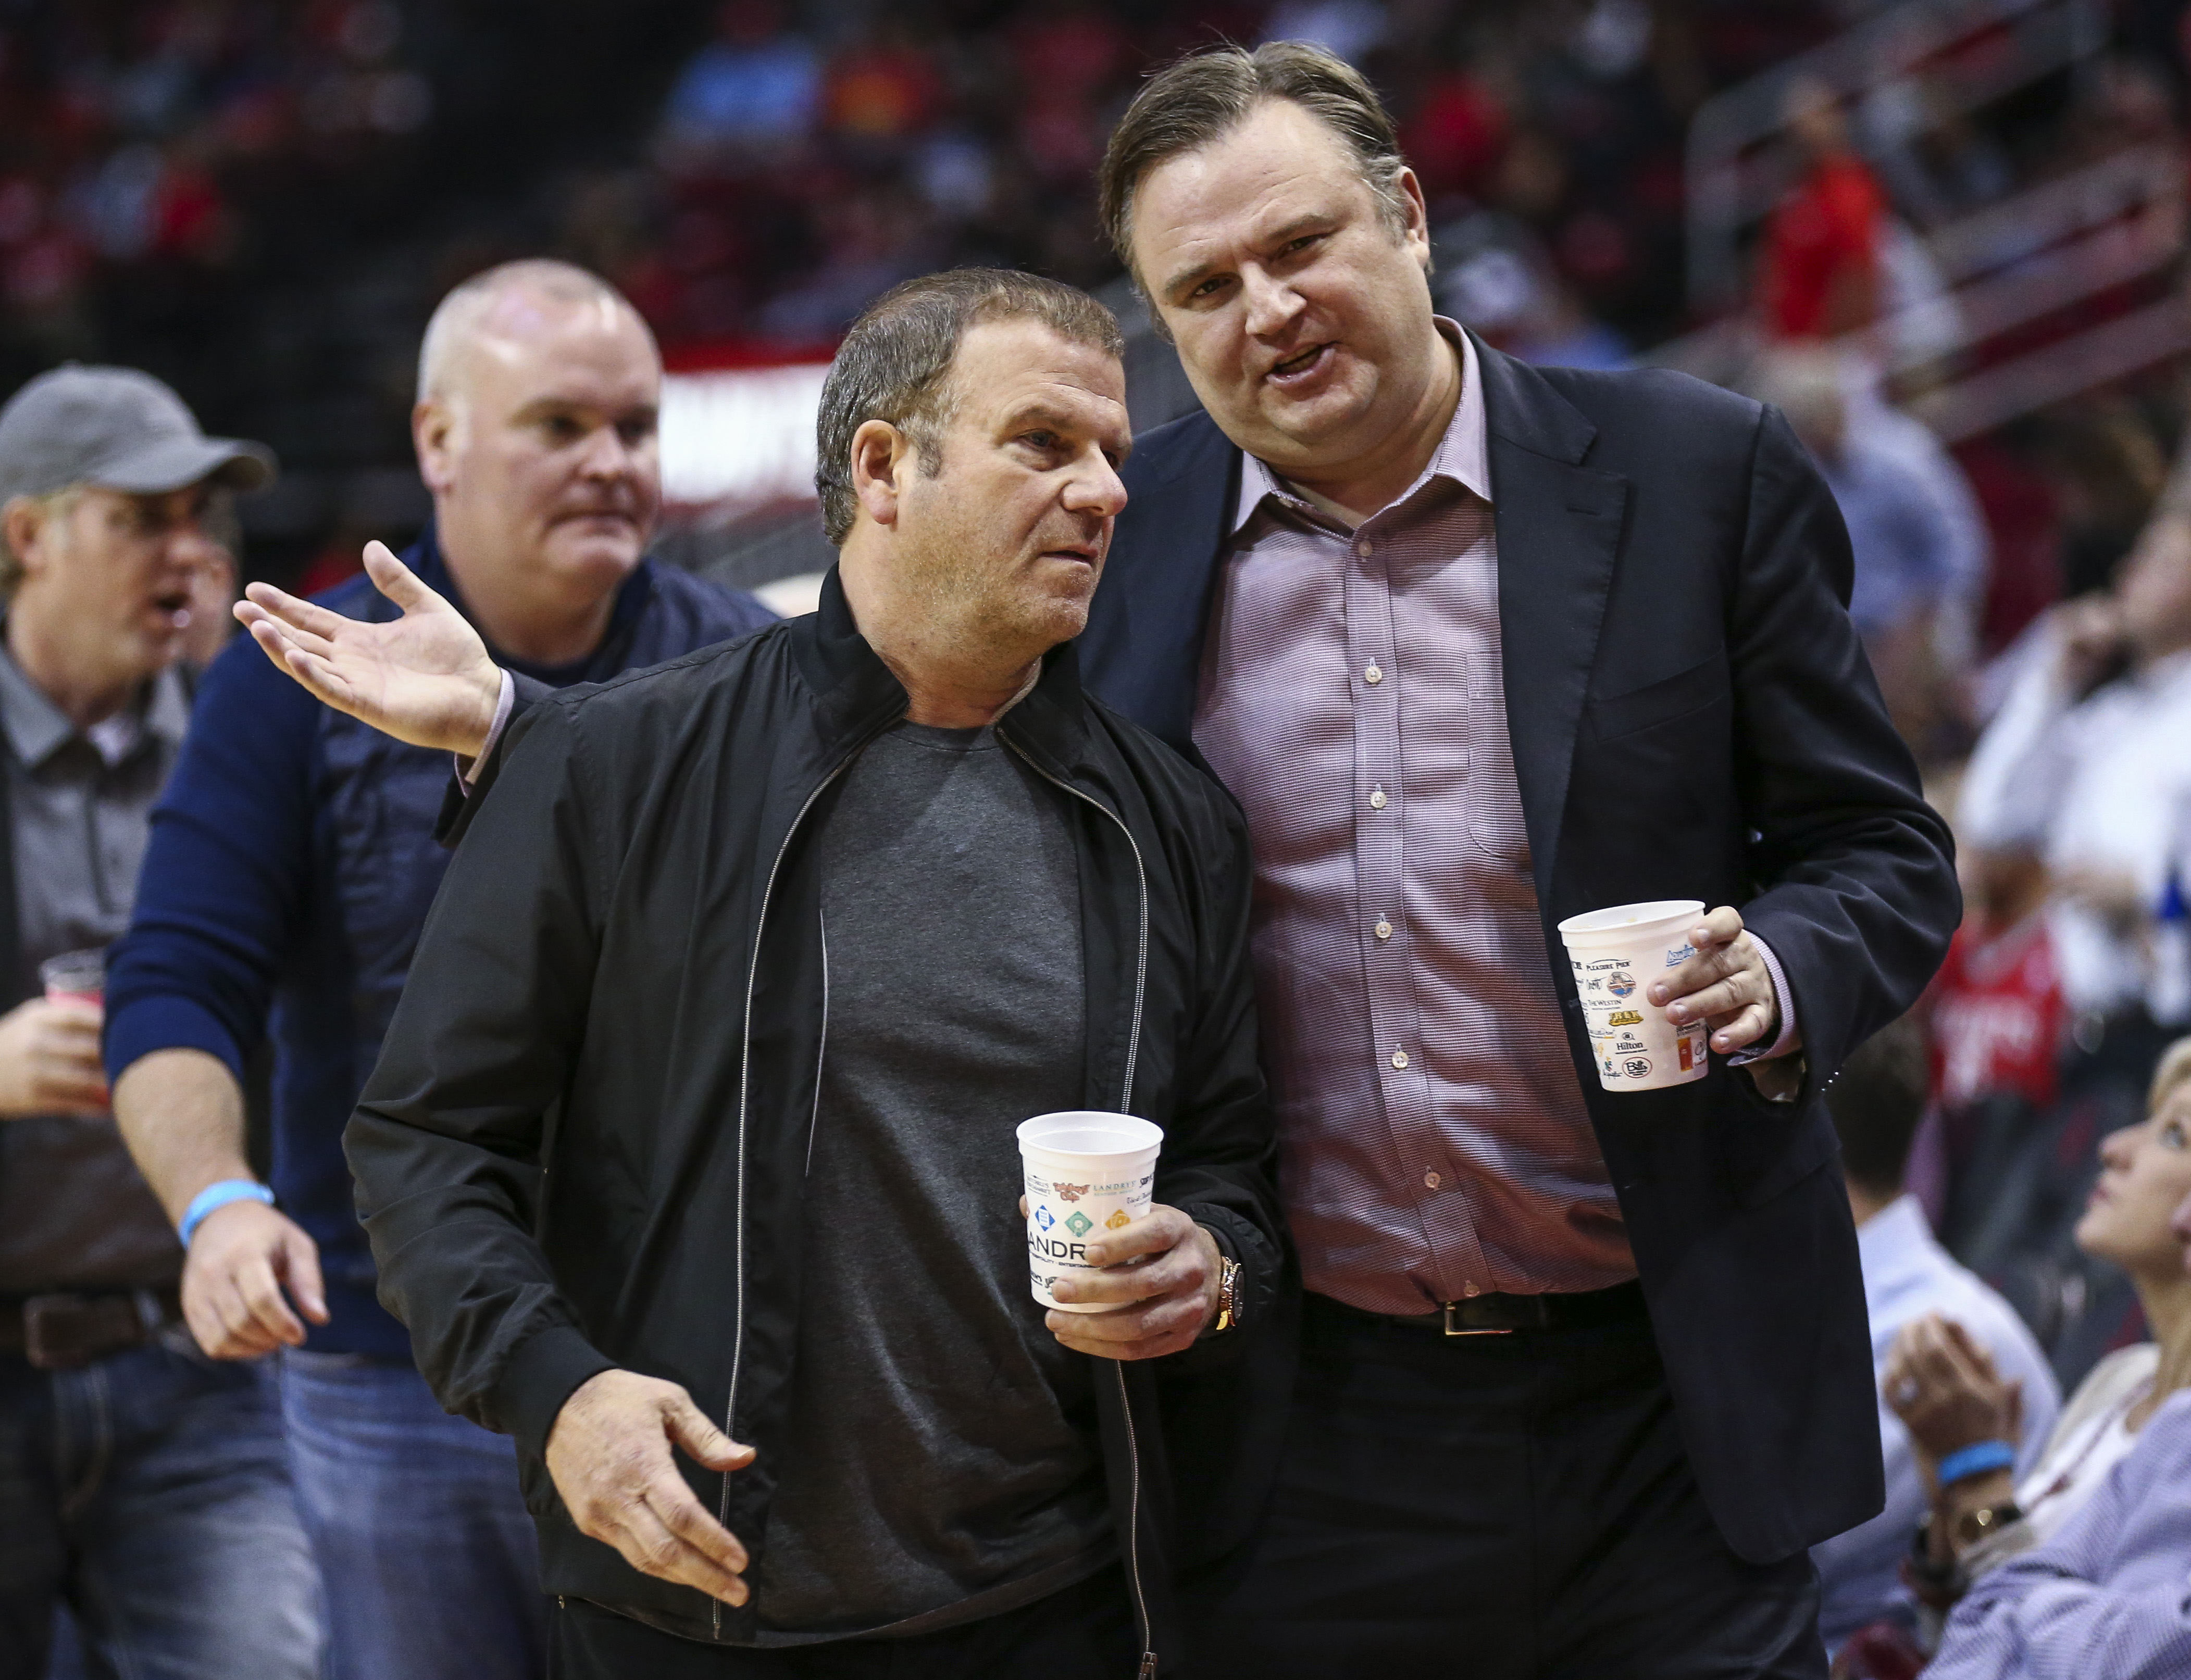 Rockets GM Daryl Morey actually 'hated' Russell Westbrook when he played for Thunder